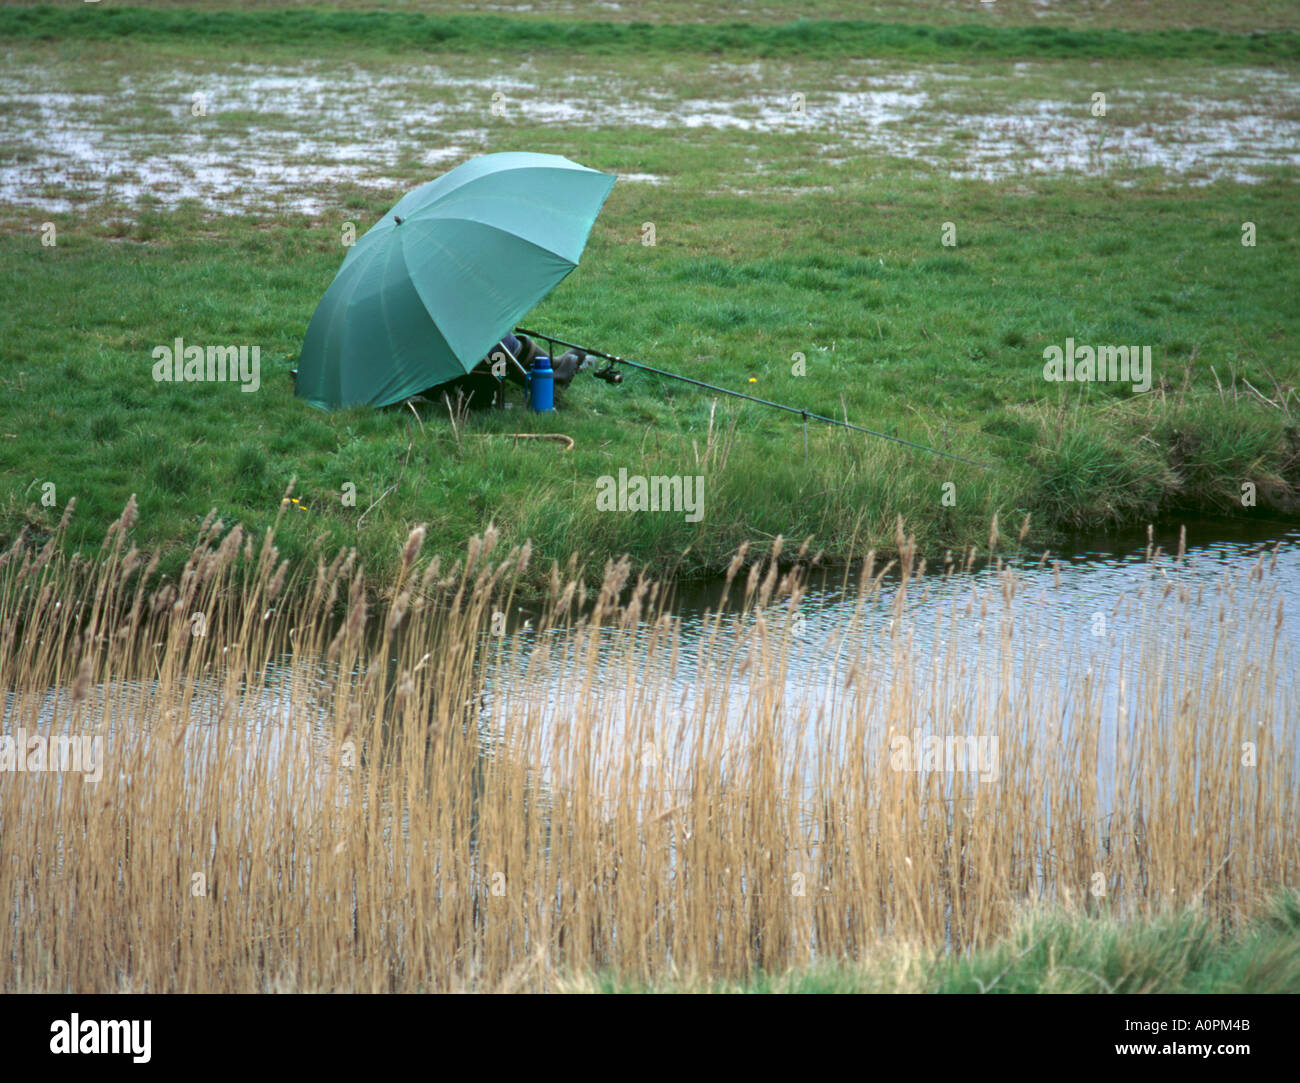 Fishing on a wet day, Suffolk, England, UK. - Stock Image